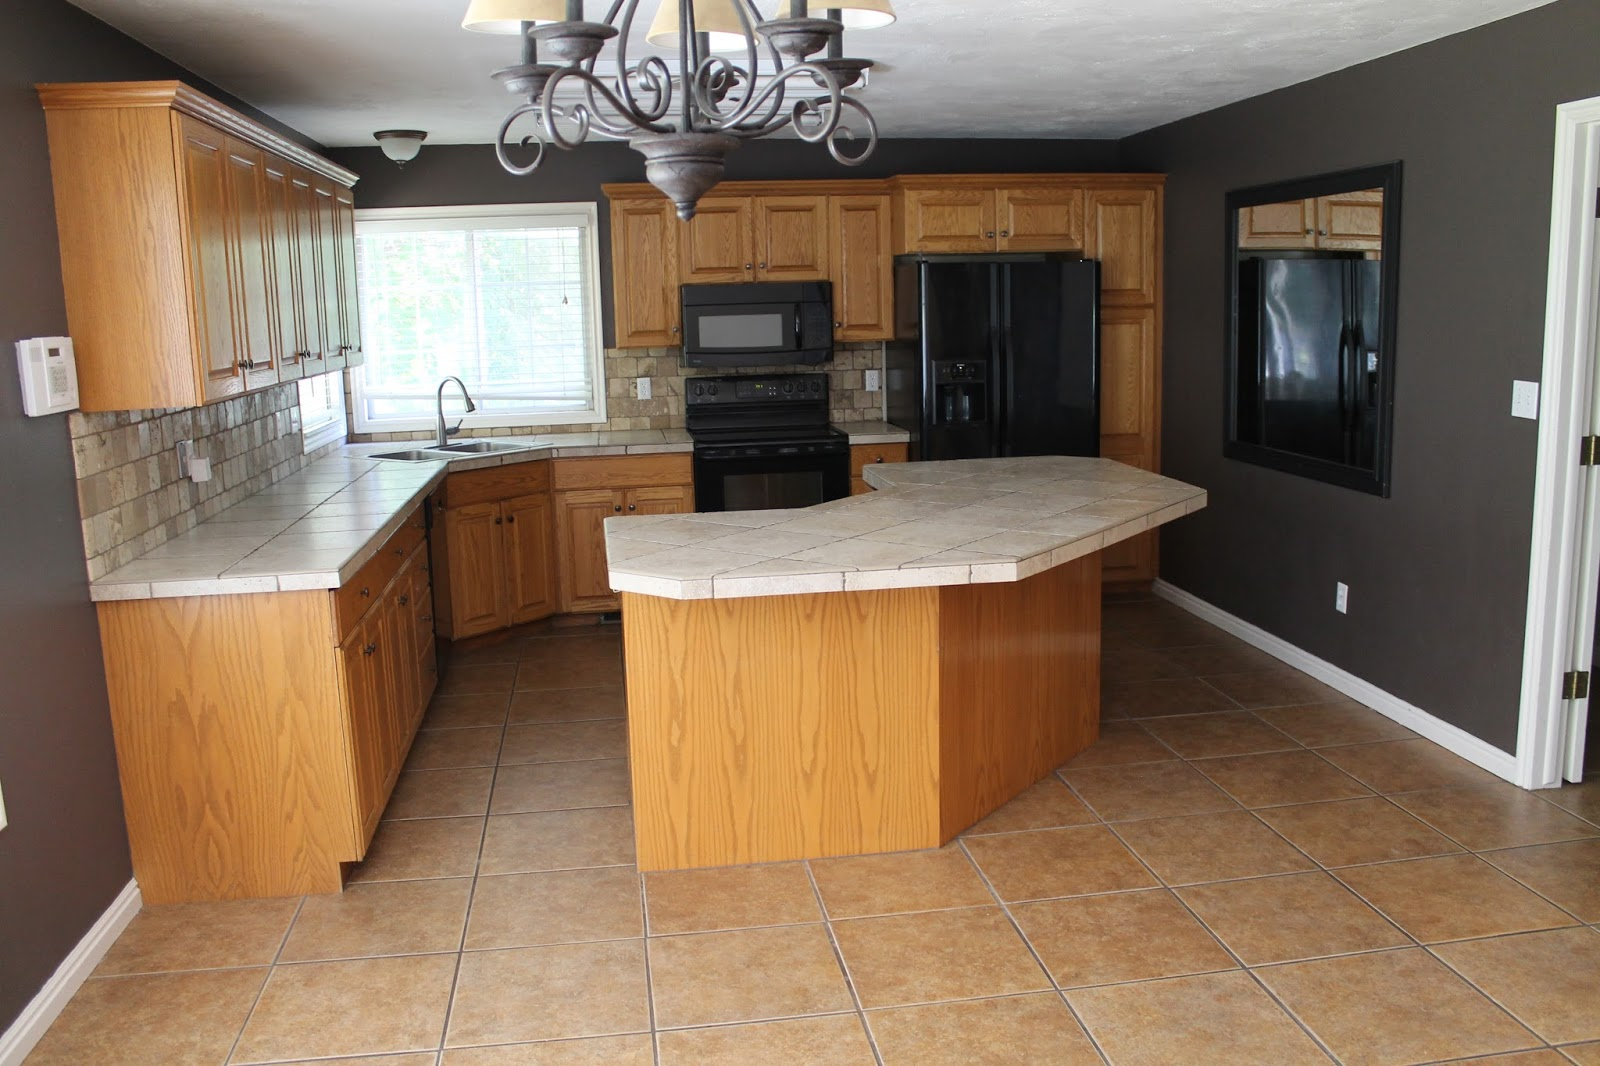 best rated kitchen cabinets affordable kitchen cabinets color 100 top rated kitchen cabinet brands kitchen cabinets lowes